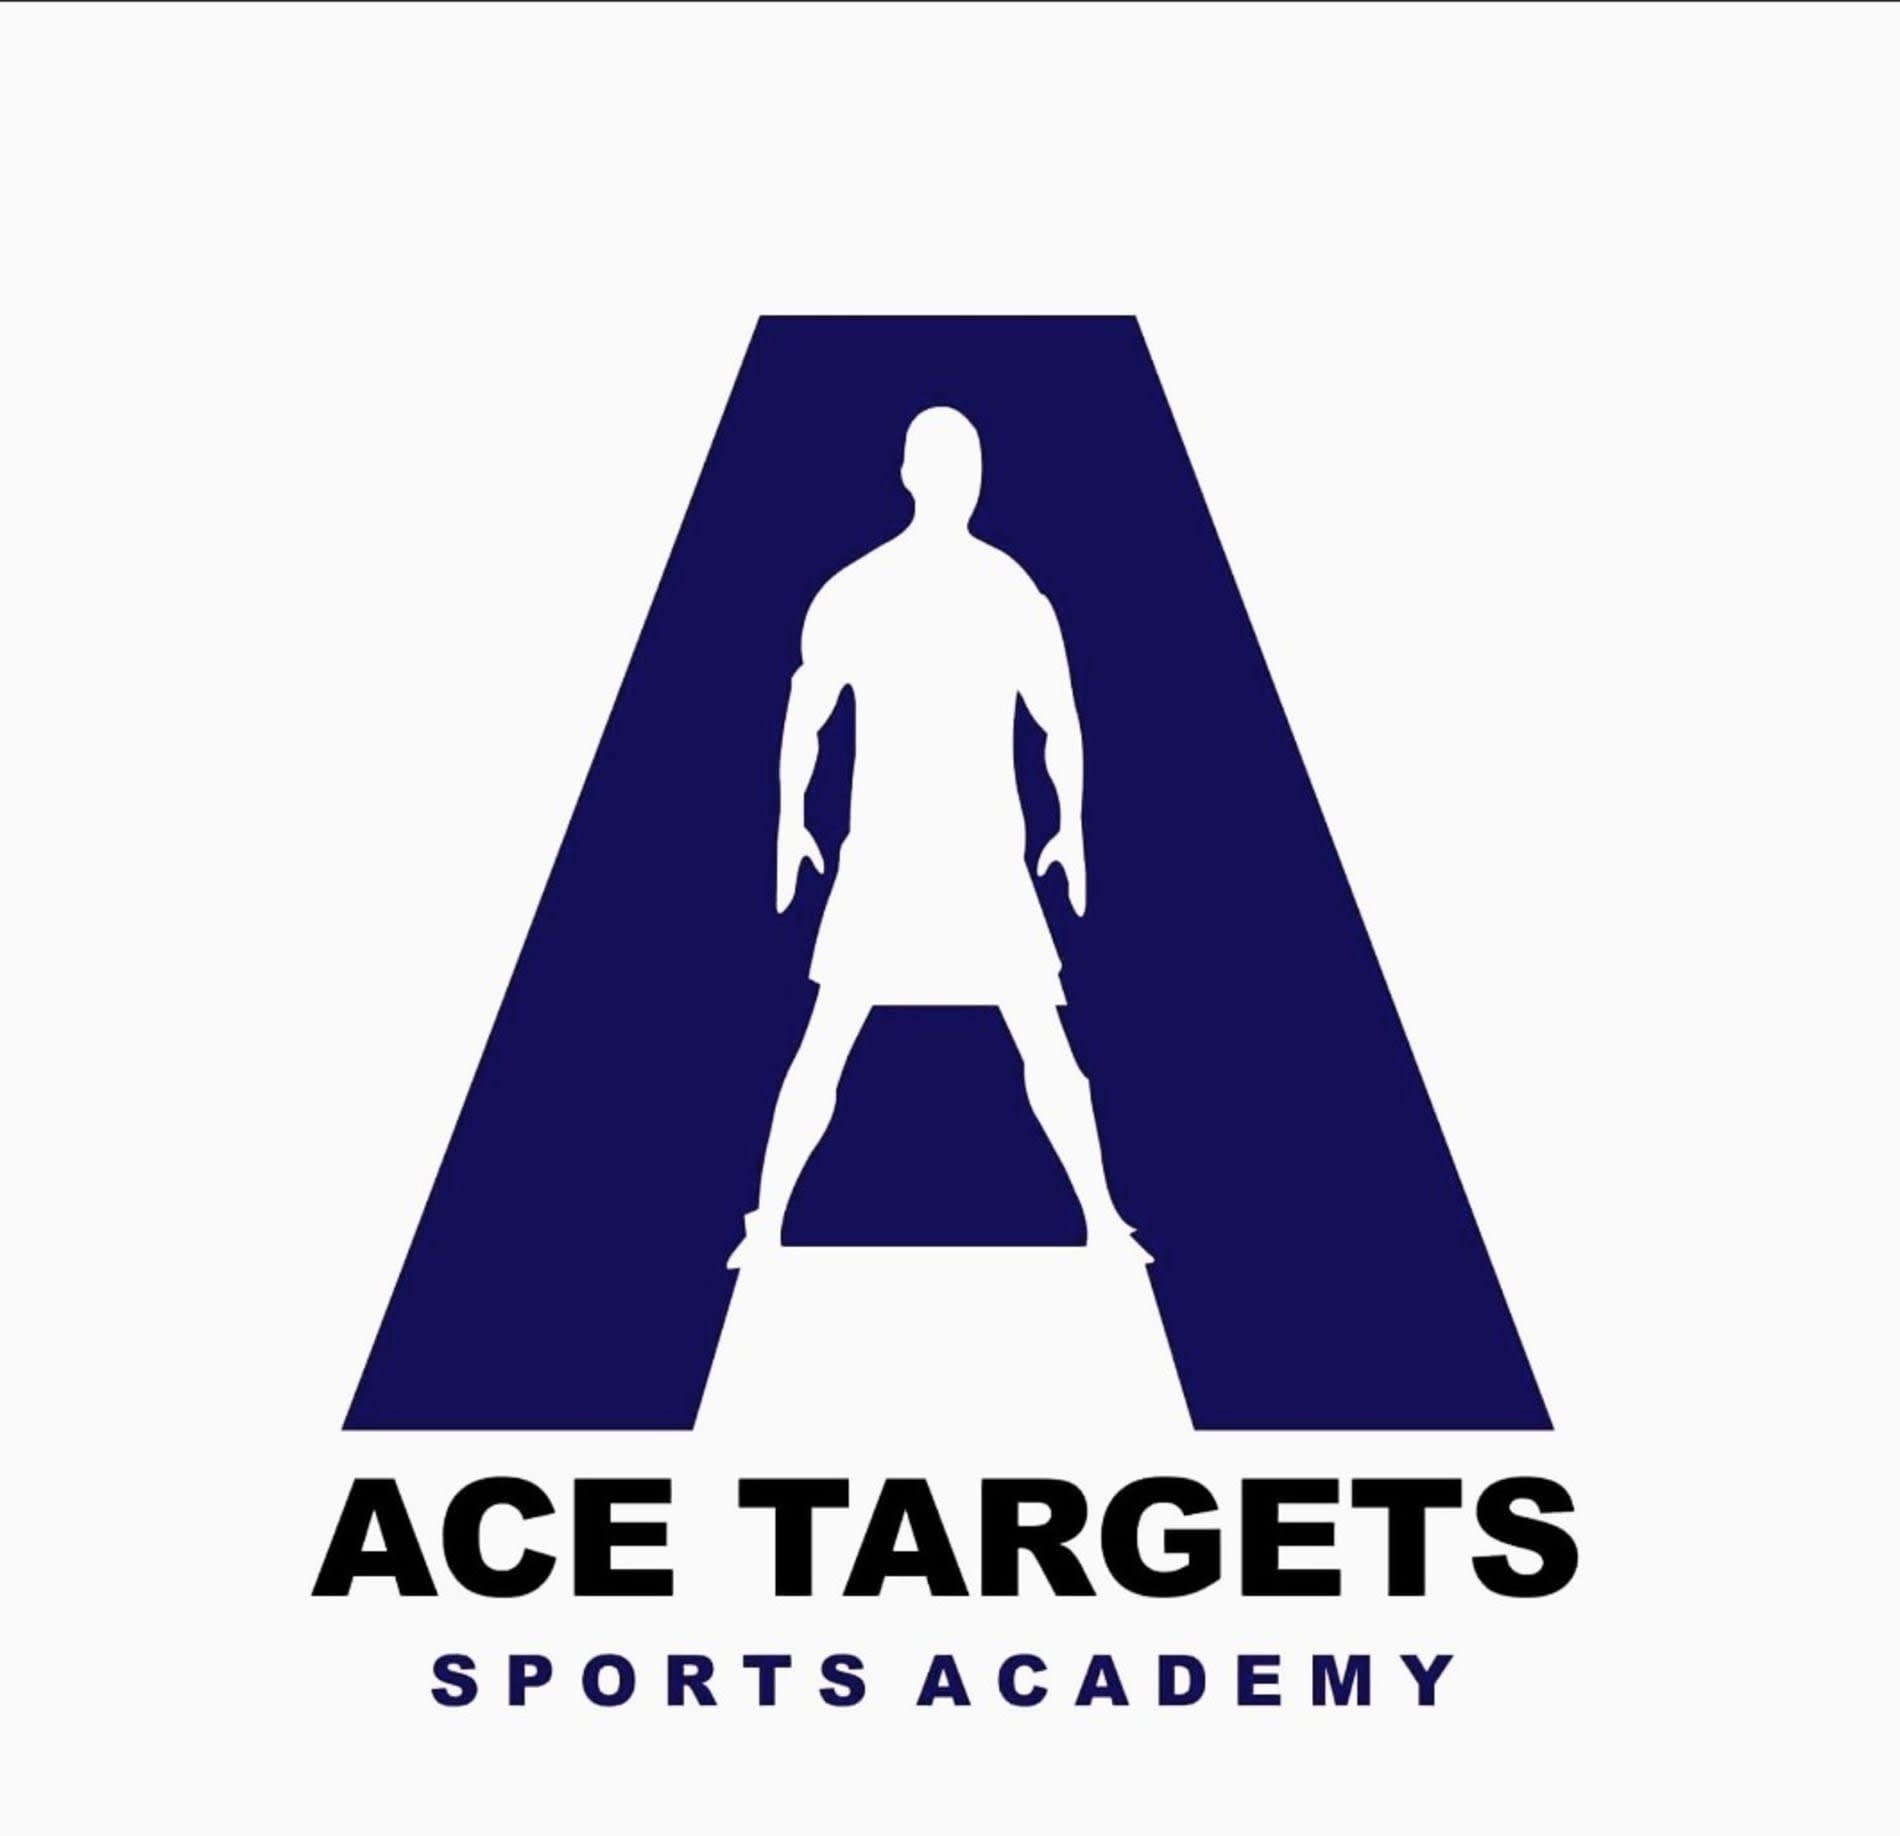 Ace Targets Sports Academy